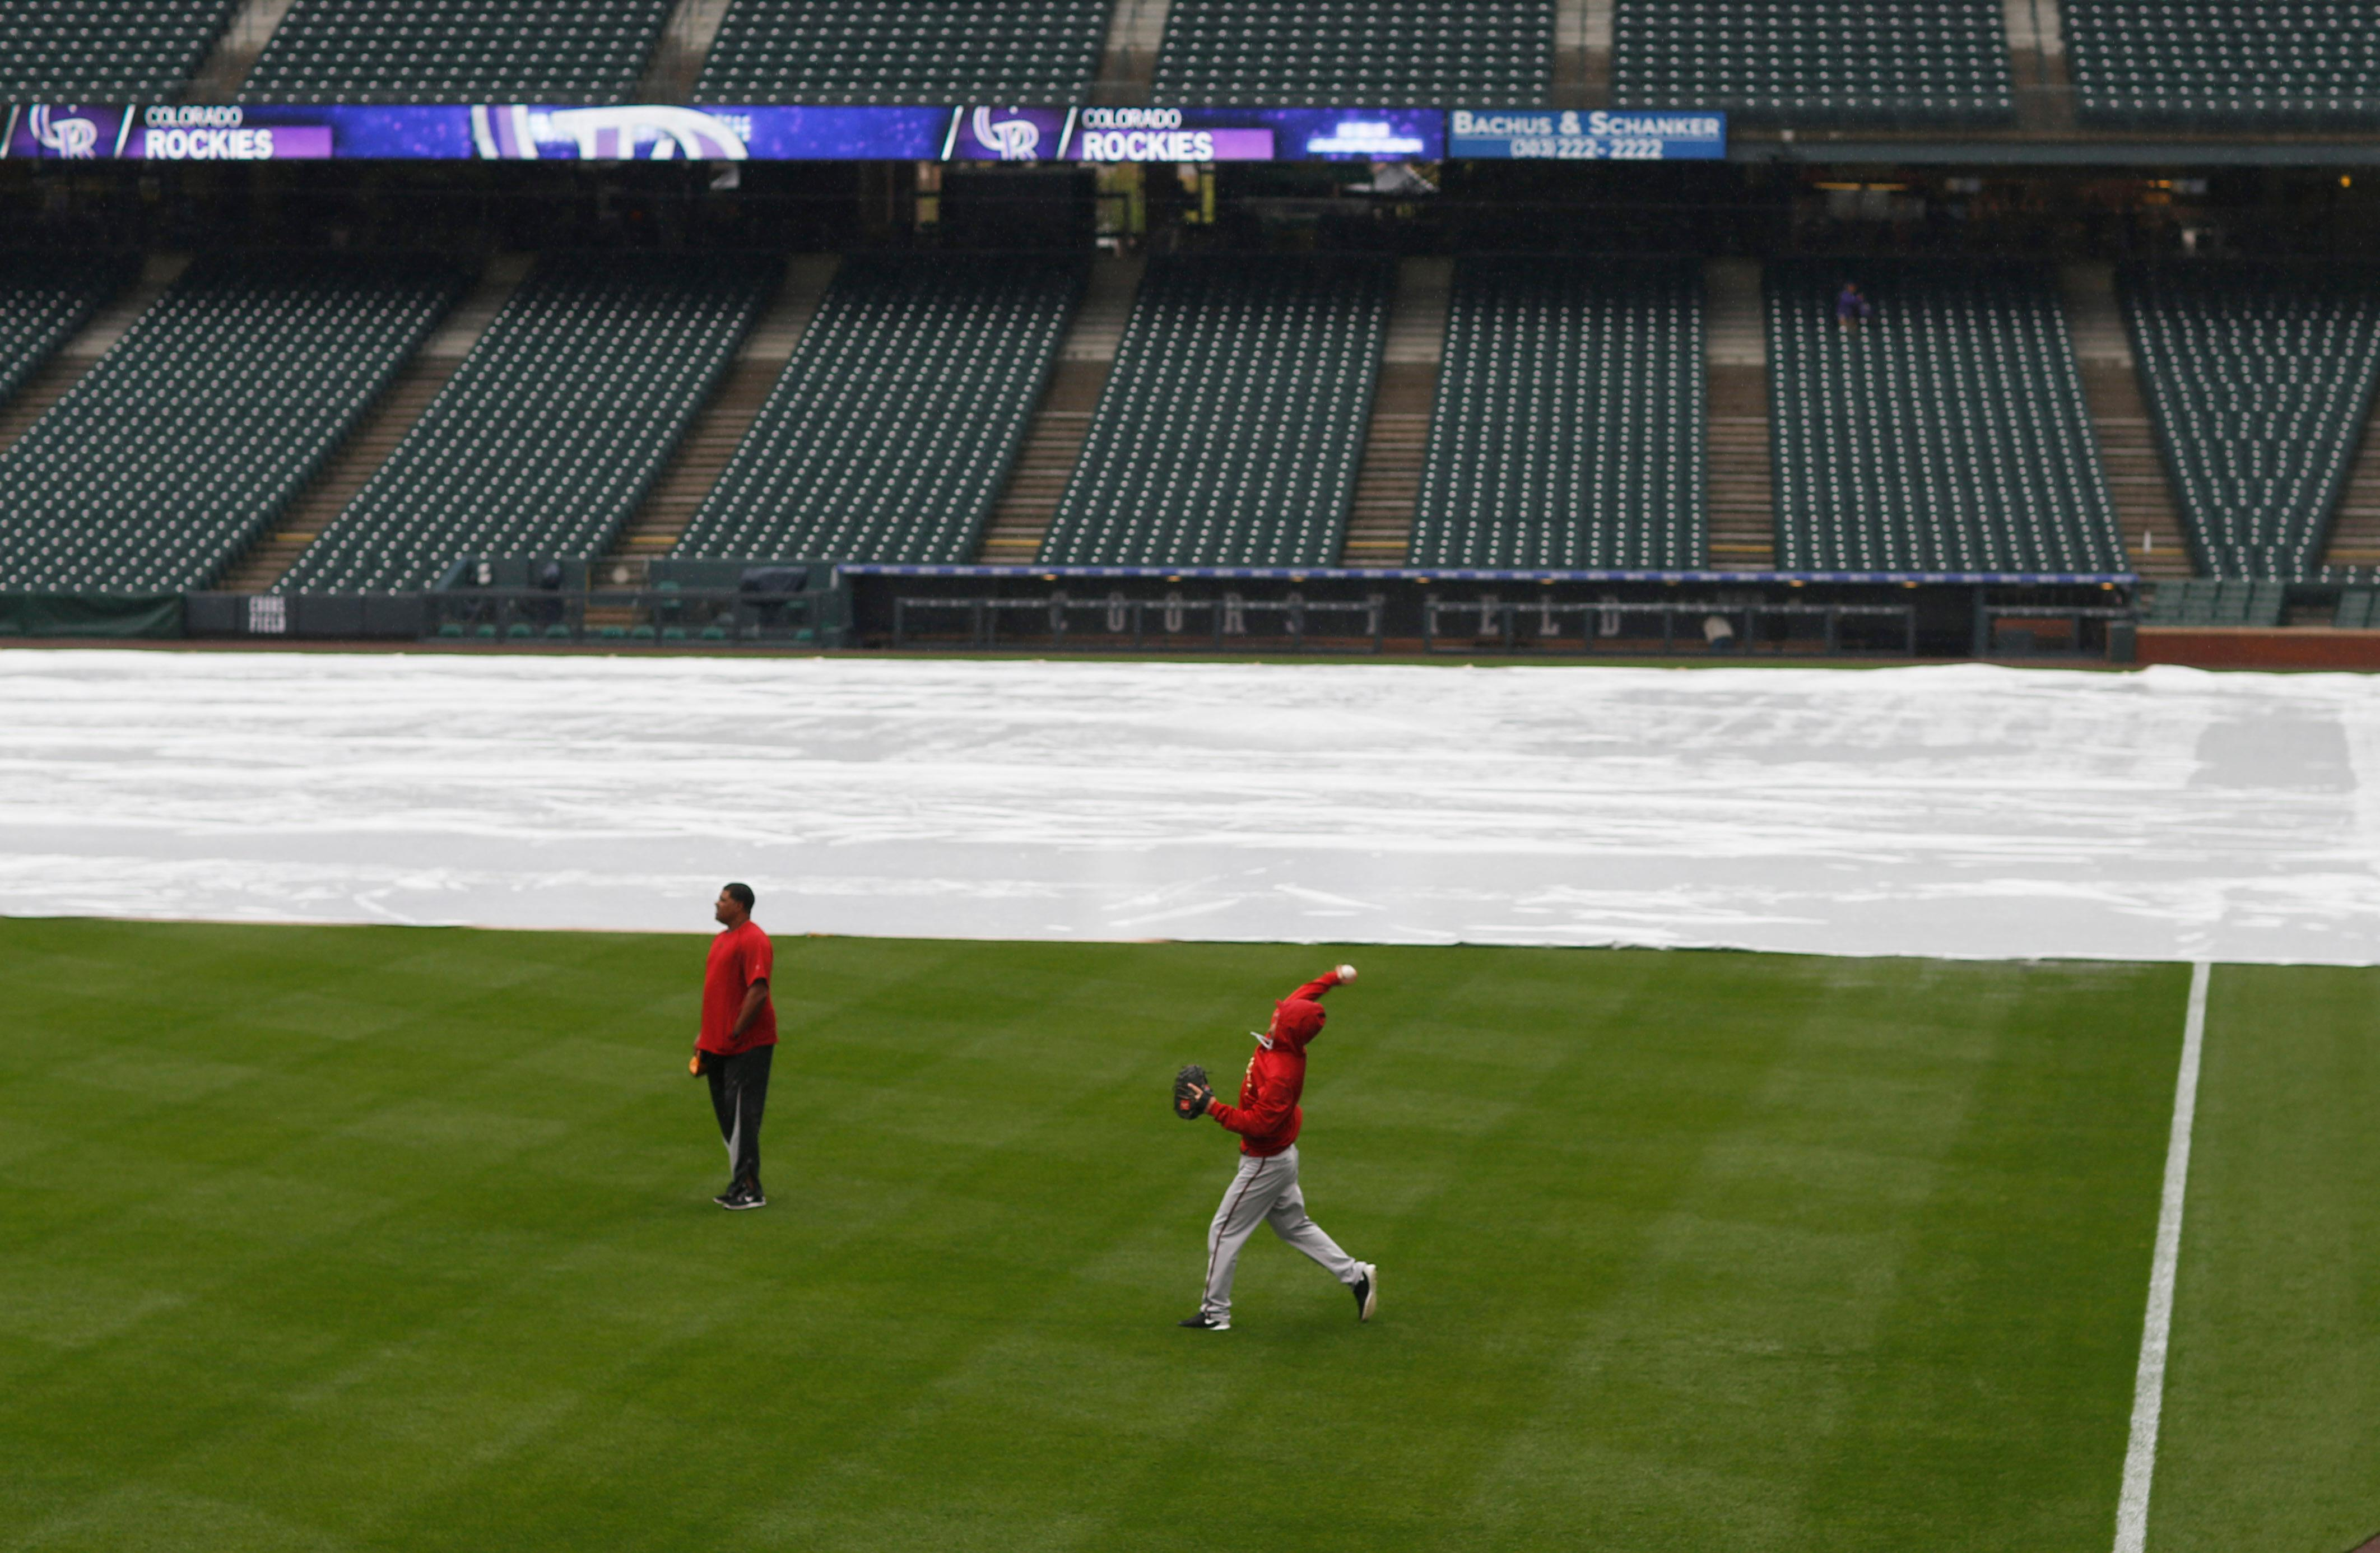 Diamondbacks and Rockies rained out, doubleheader Wednesday